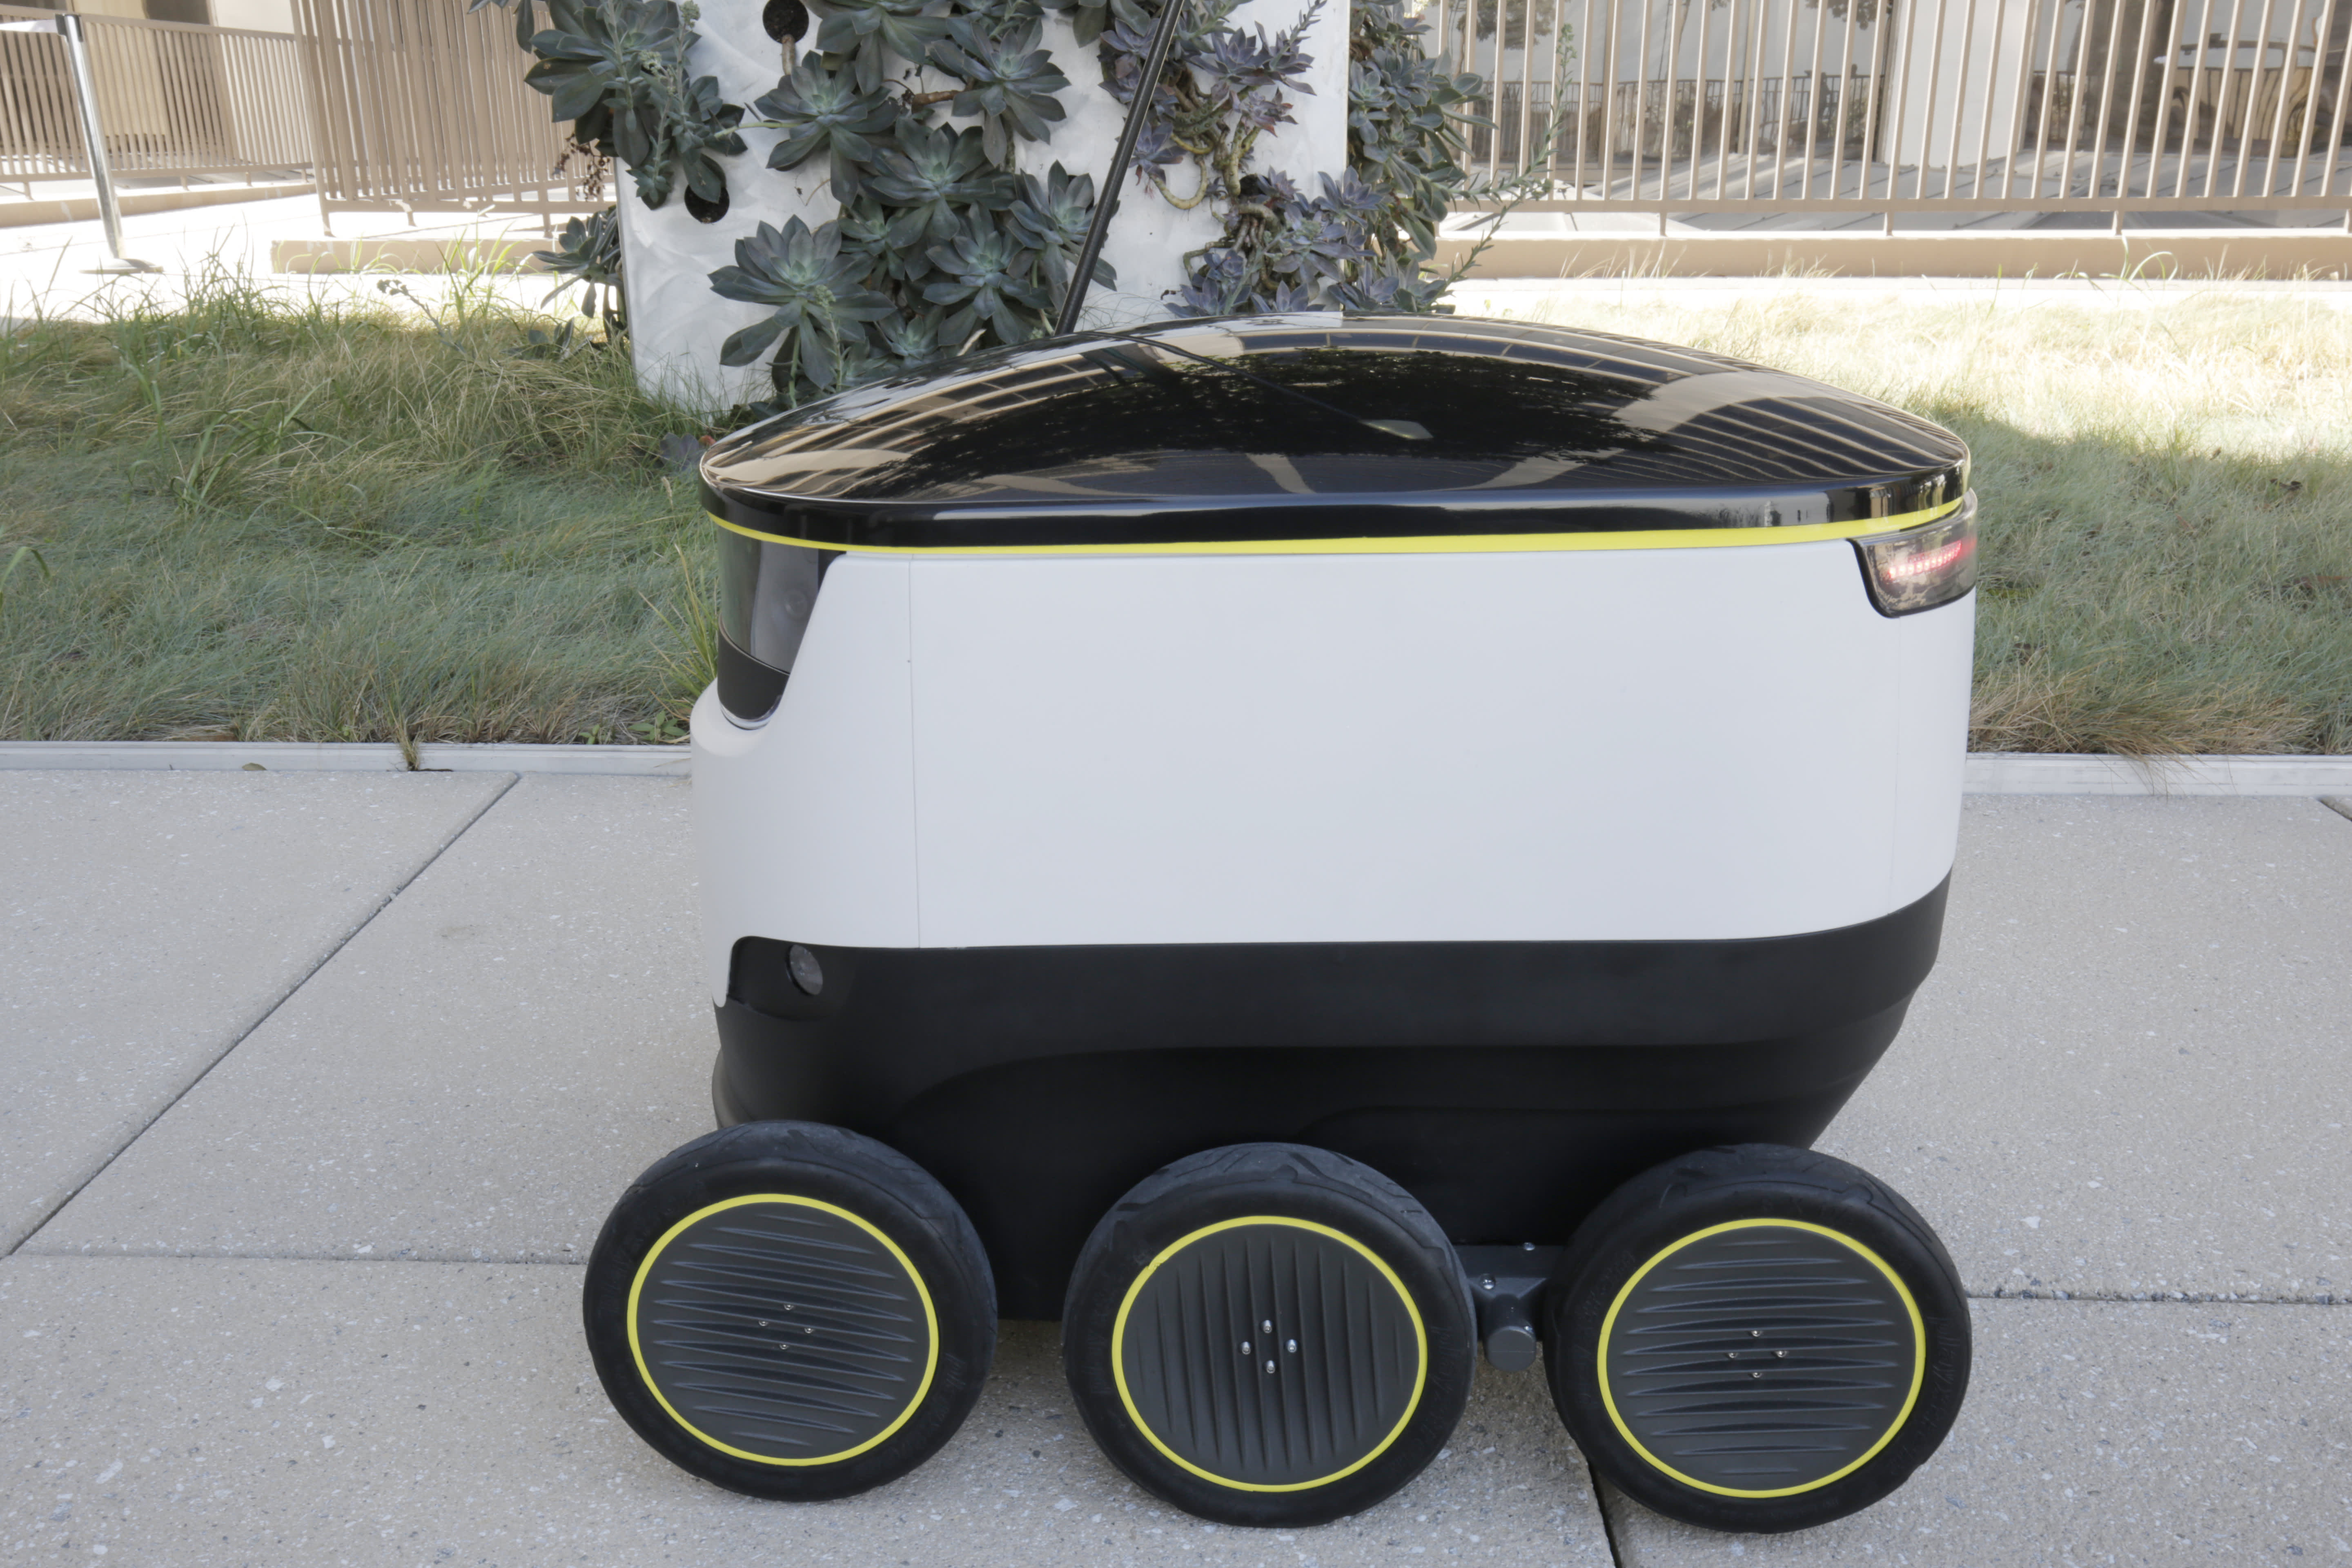 Forget Delivery Drones Meet Your New Robot